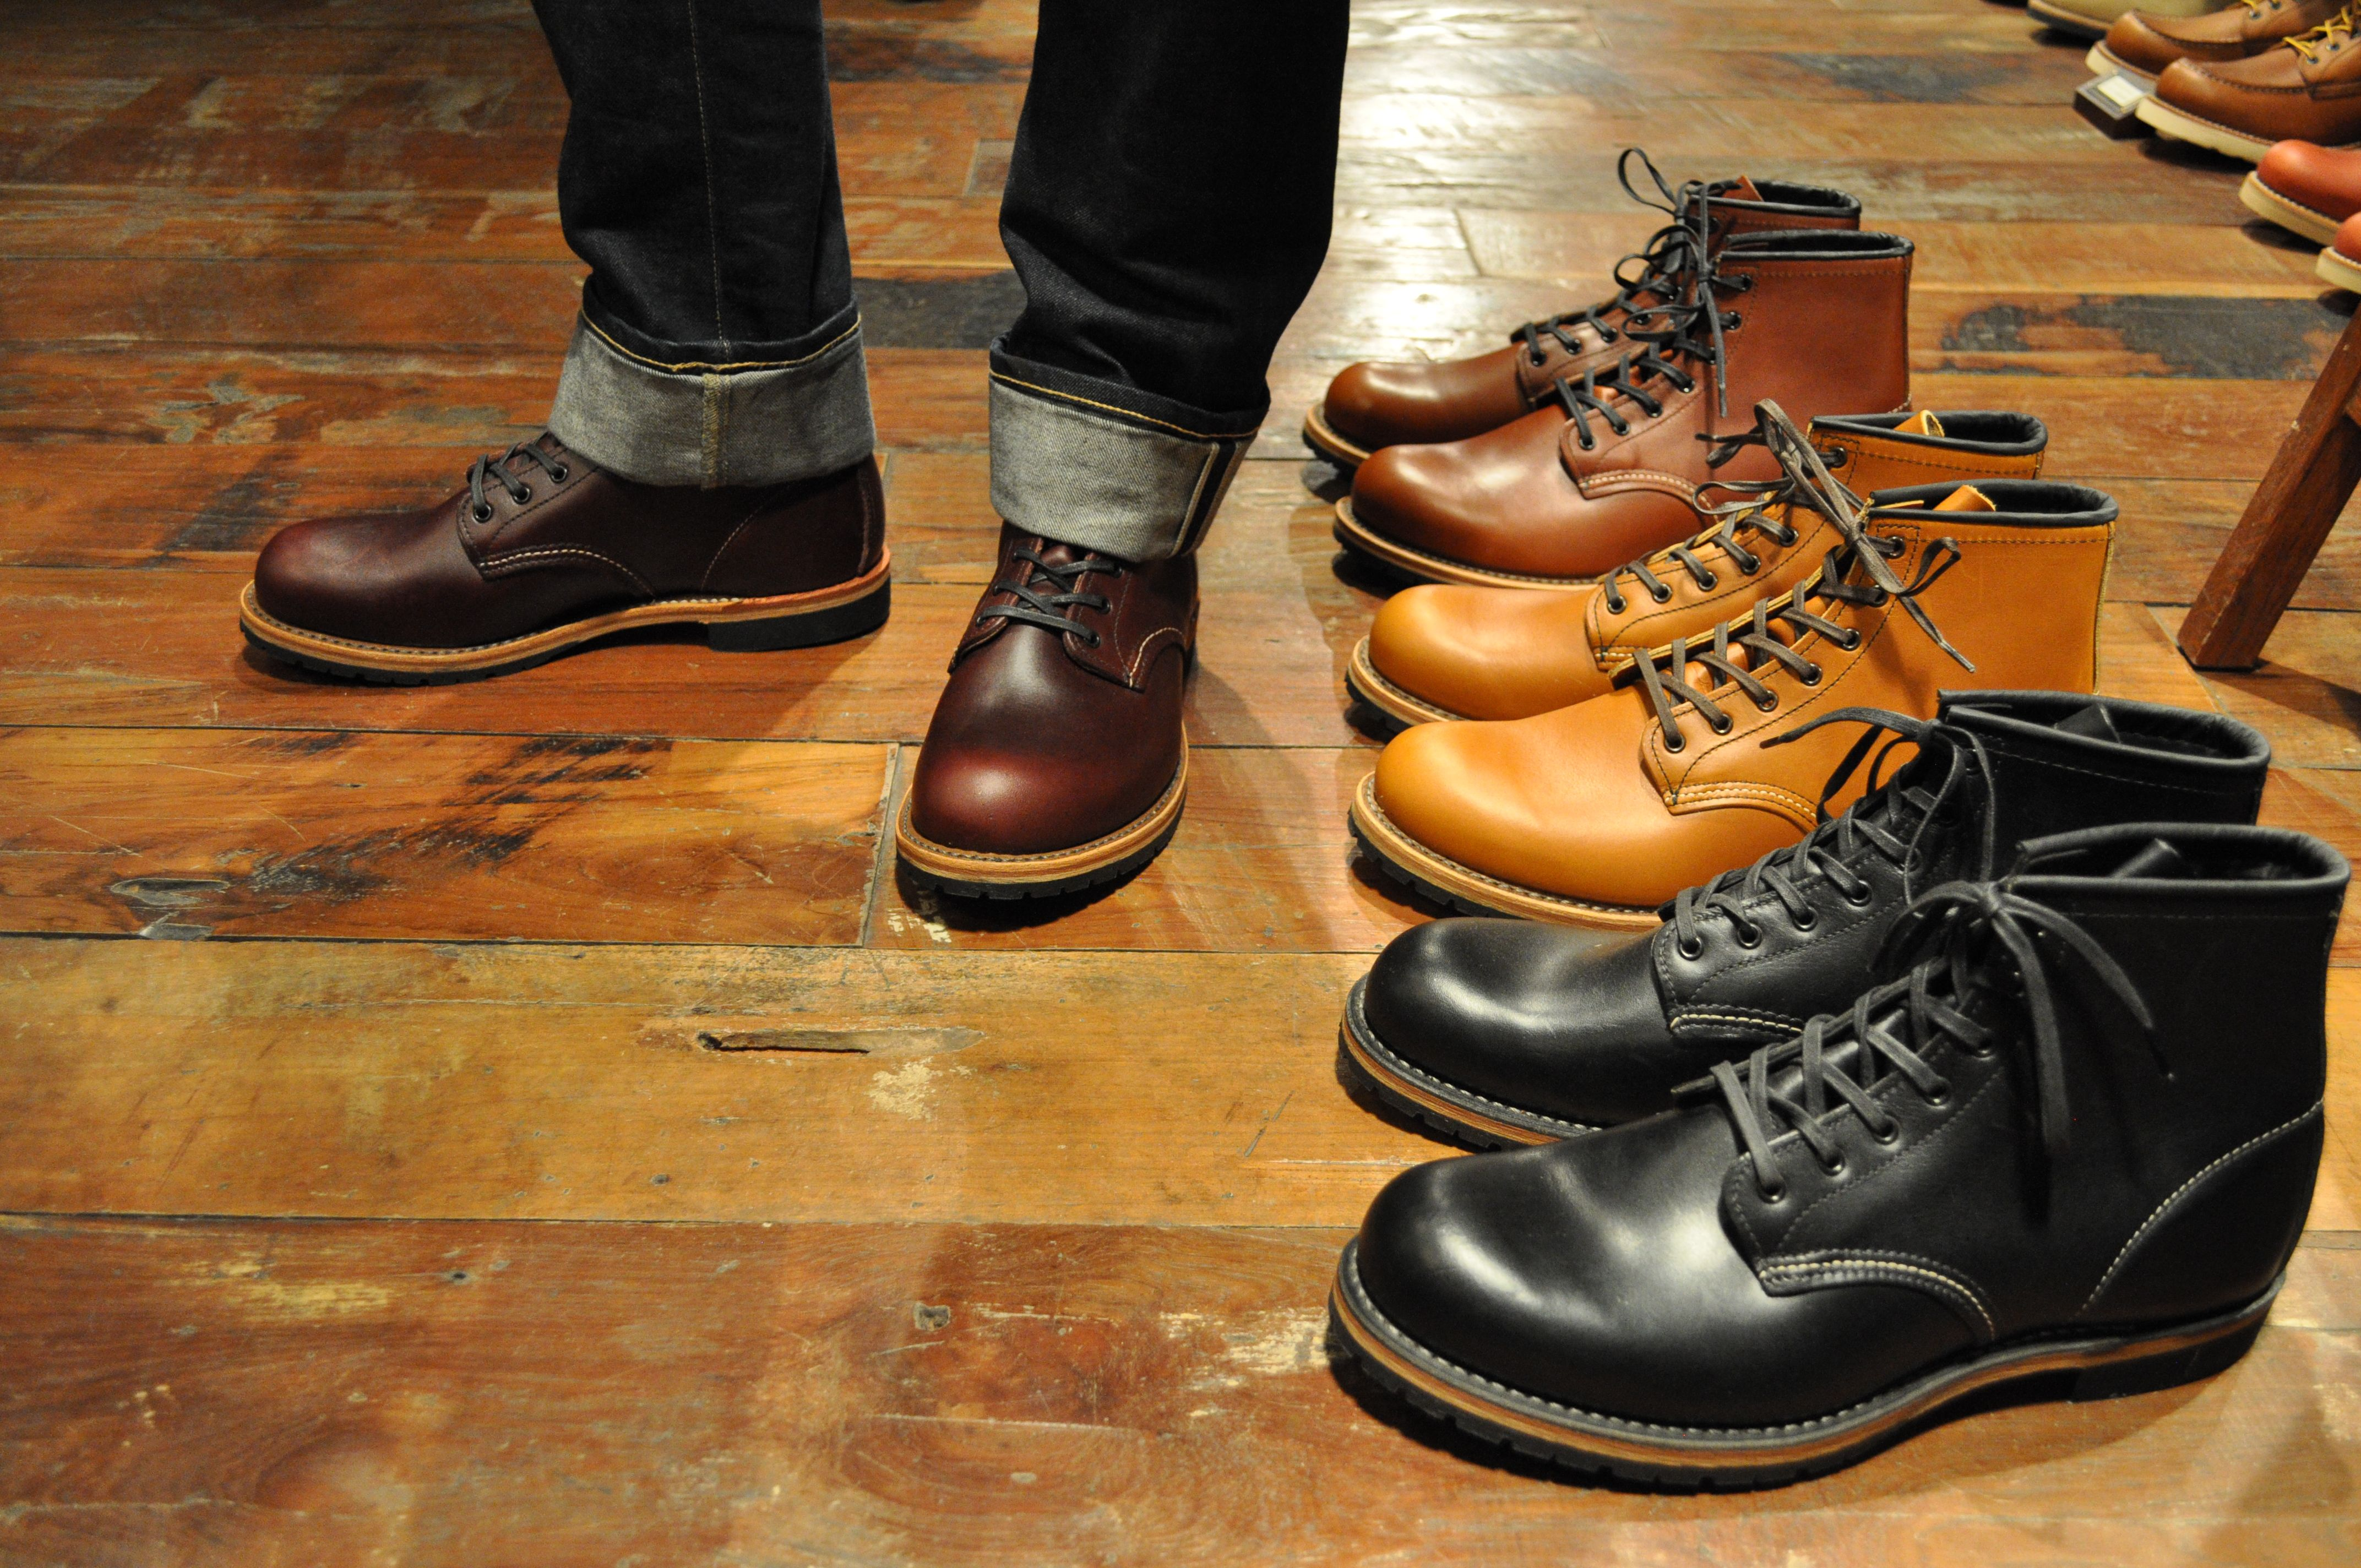 Red Wing Beckman Round-toe | RED WING MODEL | Pinterest | Red wing ...